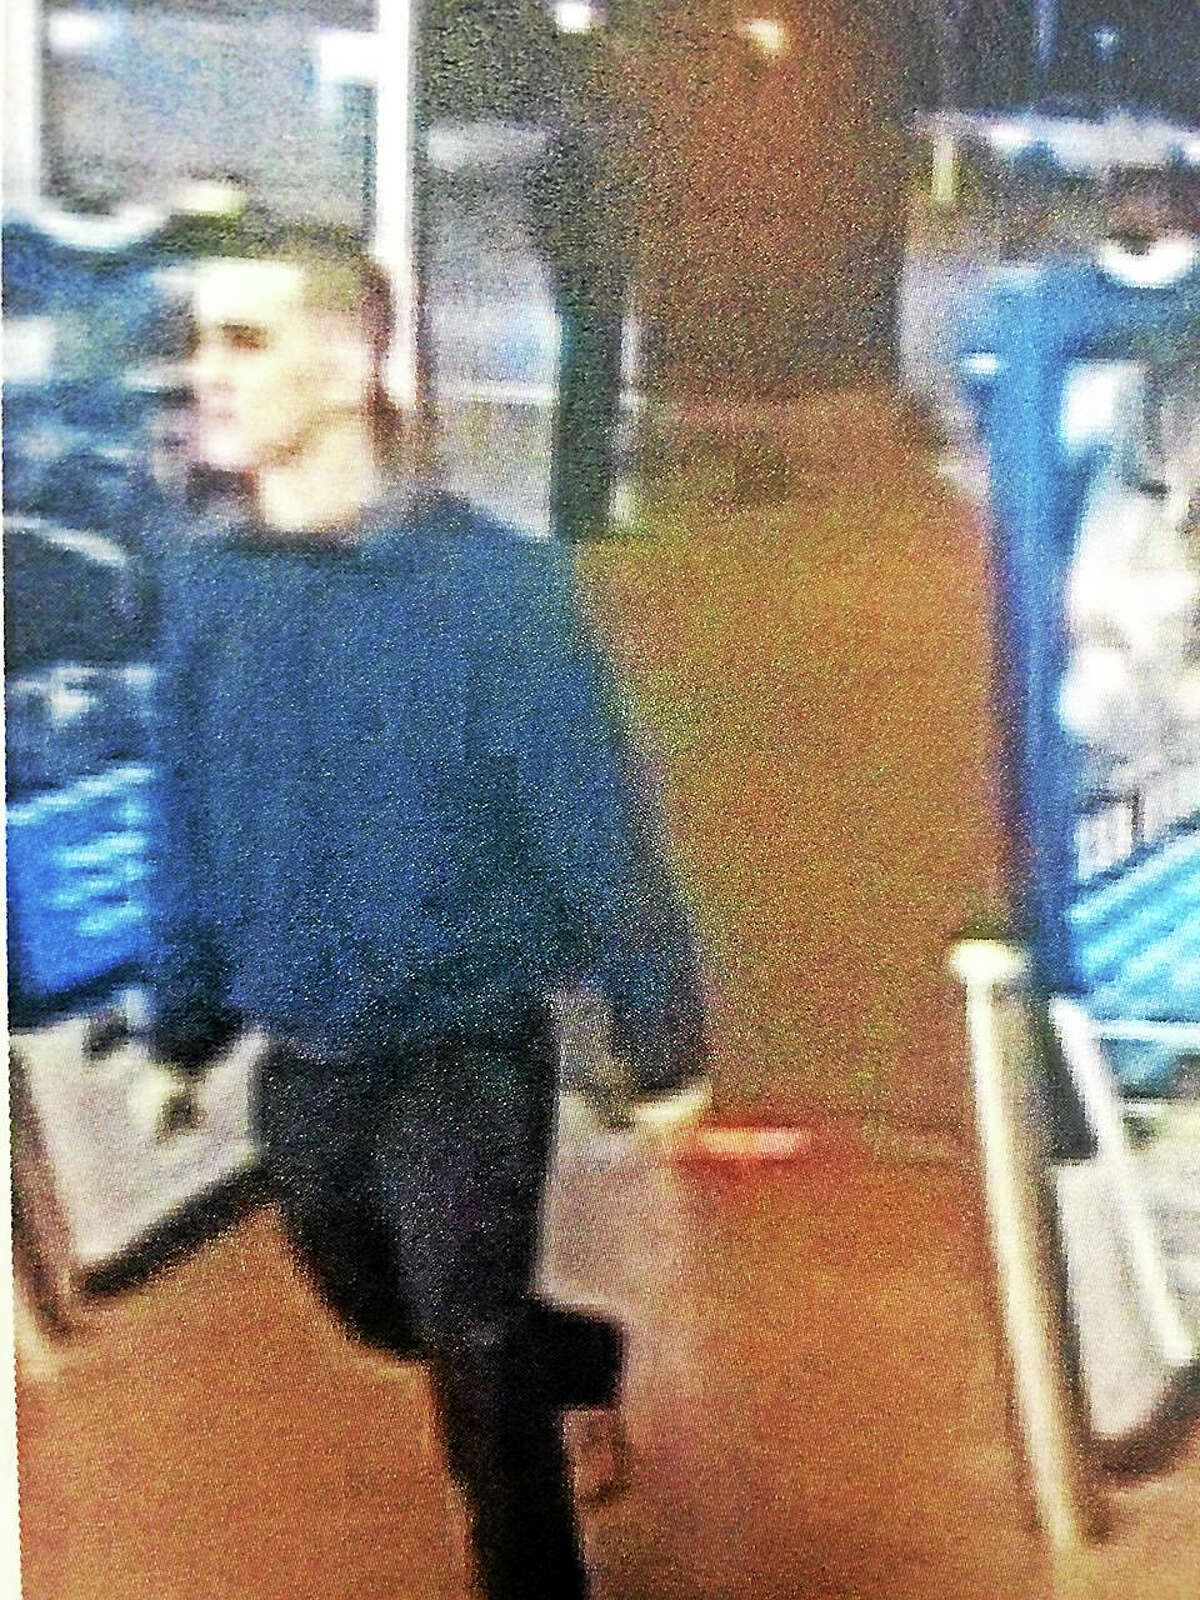 Authorities are searching for two men they say broke into a number of cars last week and stole items.